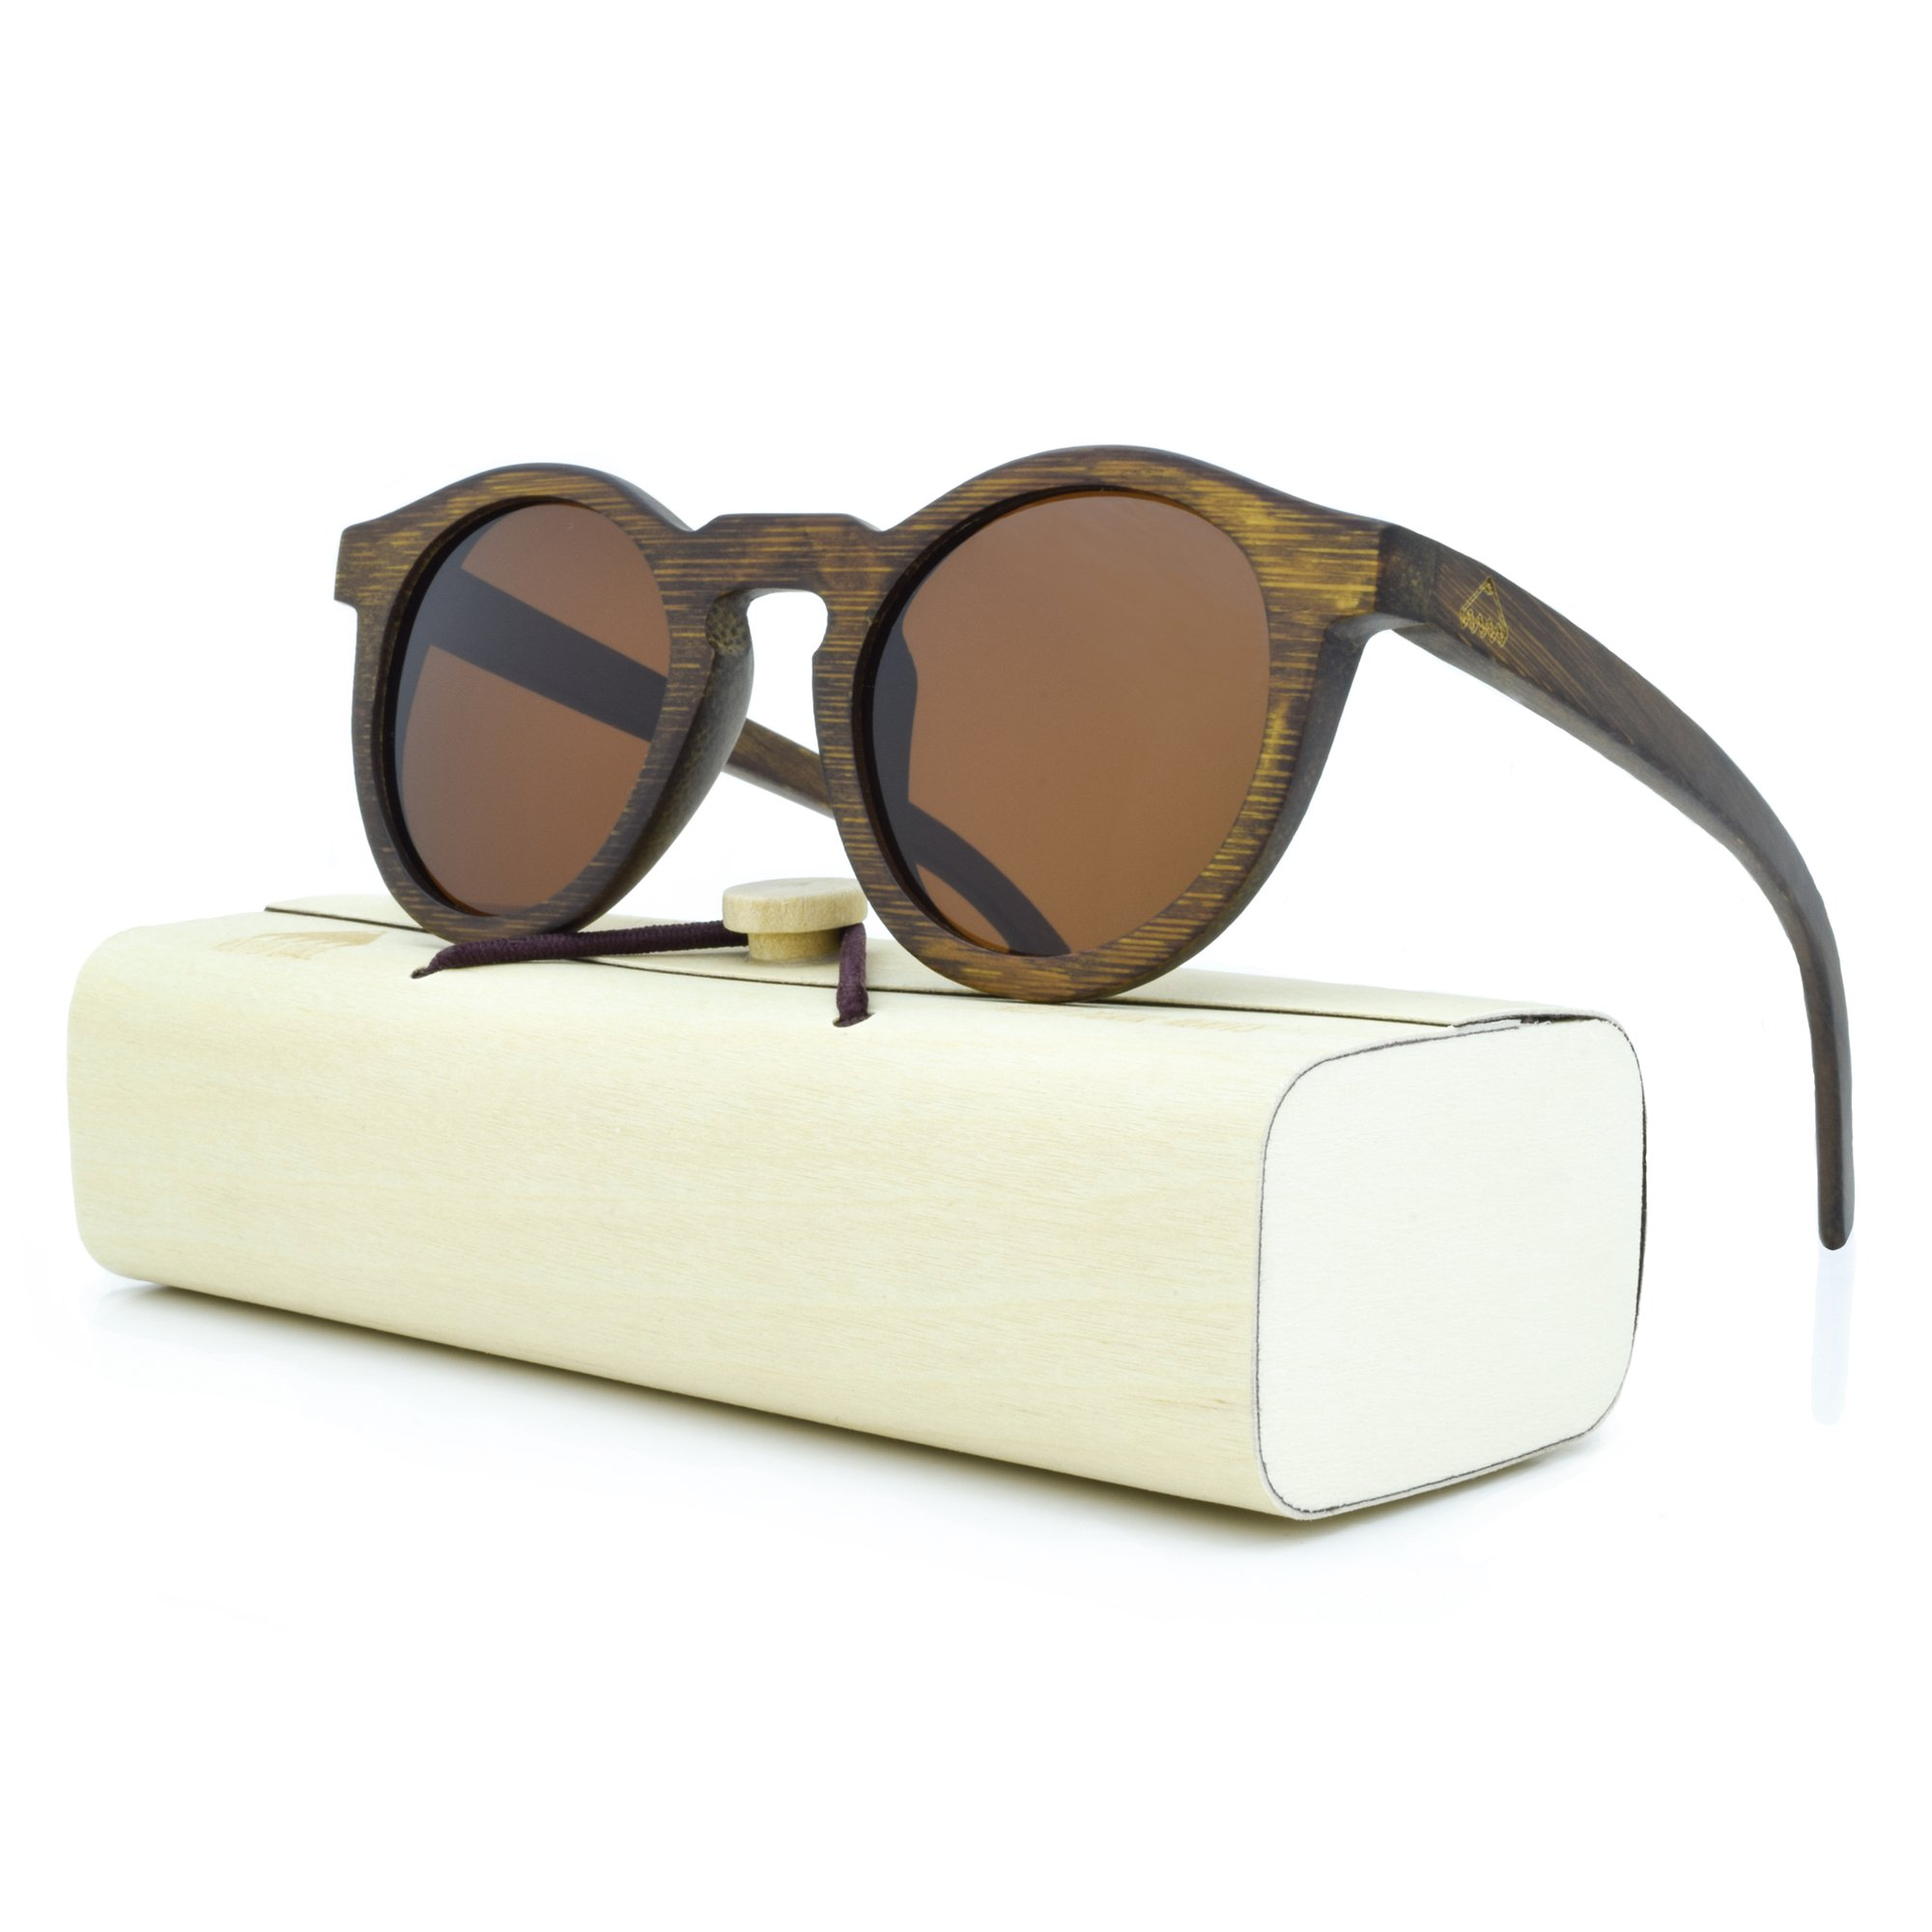 Round Wooden Sunglasses for Men & Women, Polarized Lenses, 100% Real Wood, Perfect Gift by Rooted Shade